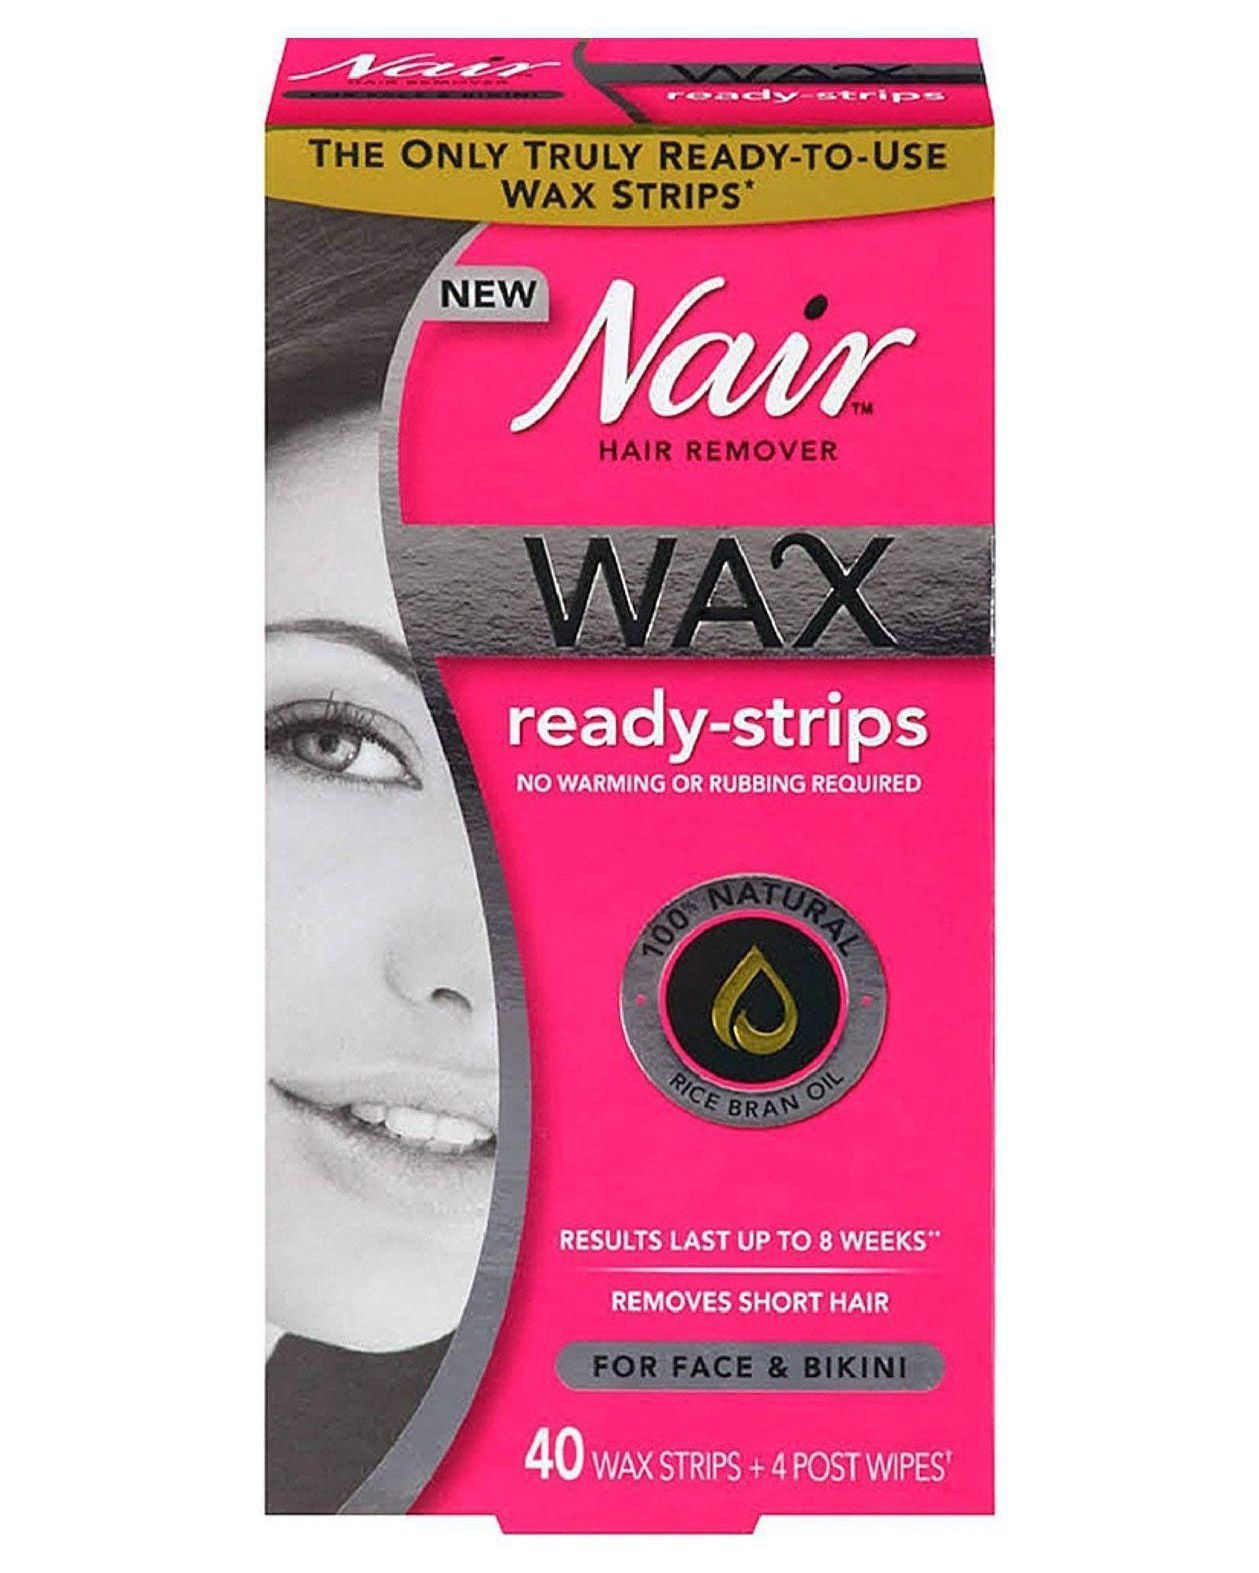 Nair Wax Ready-Strips Hair Remover for Face